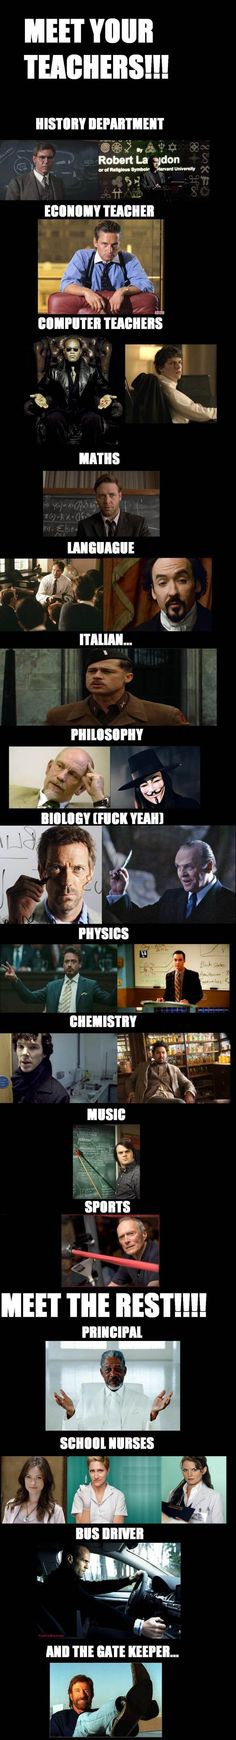 When does the new semester start?! Physics with Tony Stark would be bomb, but I am all over that Biology department! :D